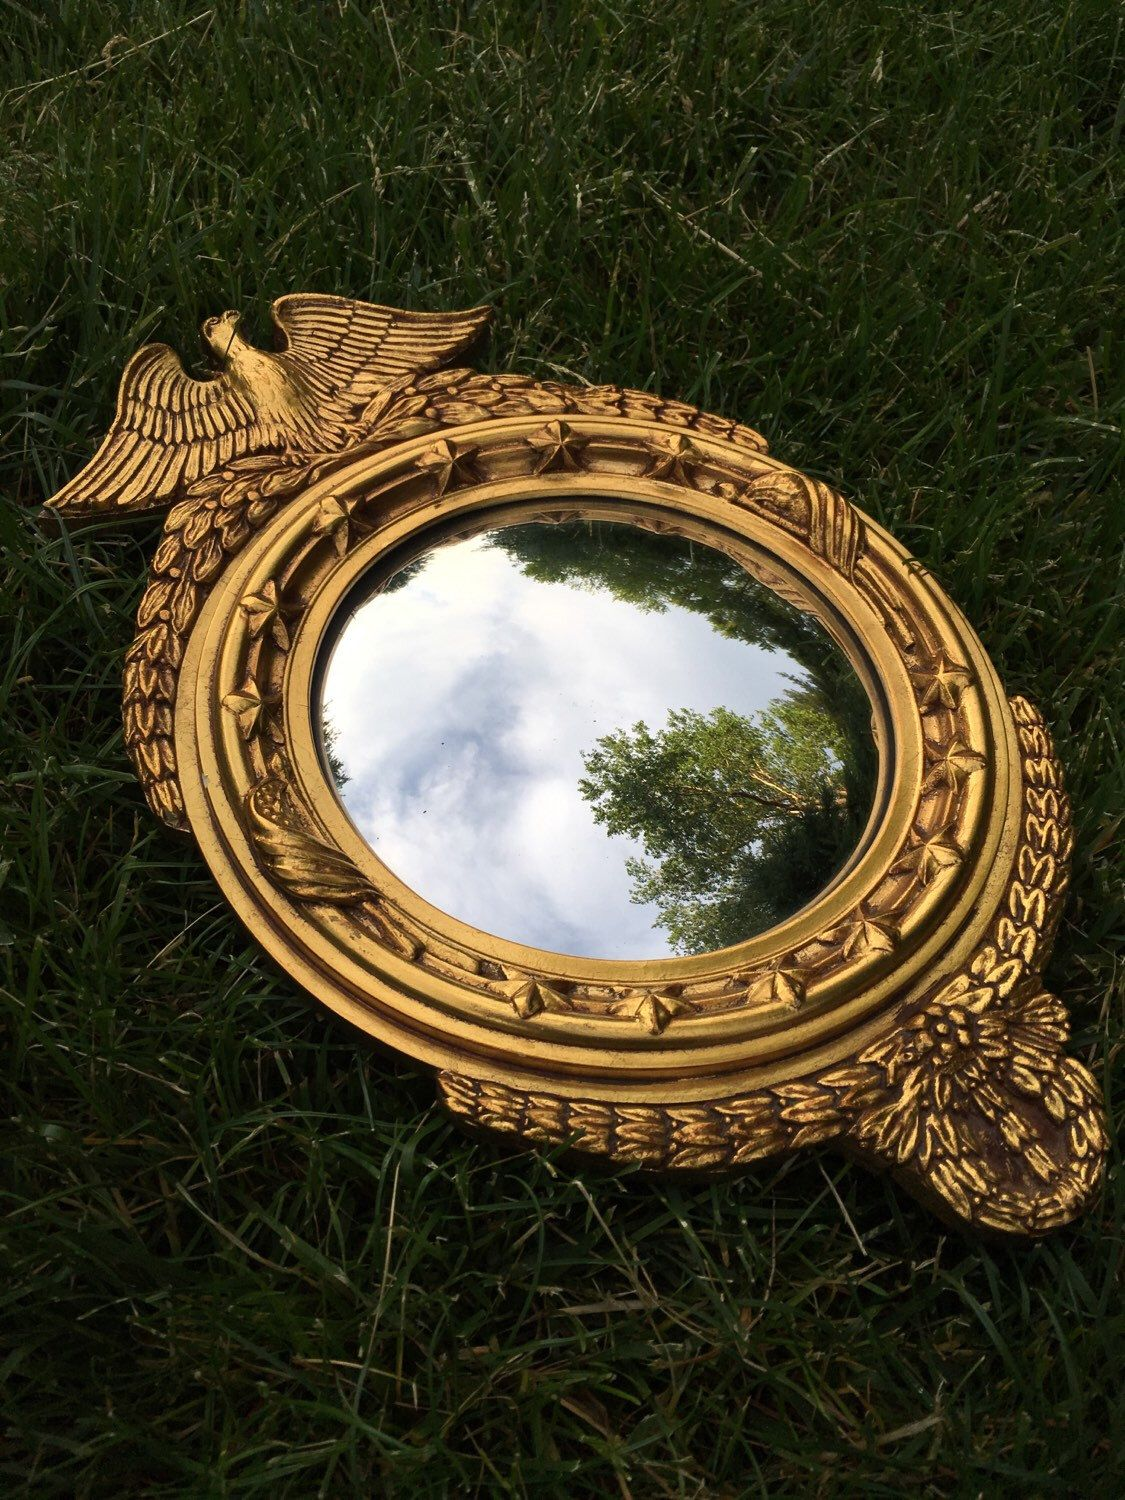 Gold convex eagle mirror for sale https://www.etsy.com/listing/398006543/vintage-gold-painted-eagle-convex